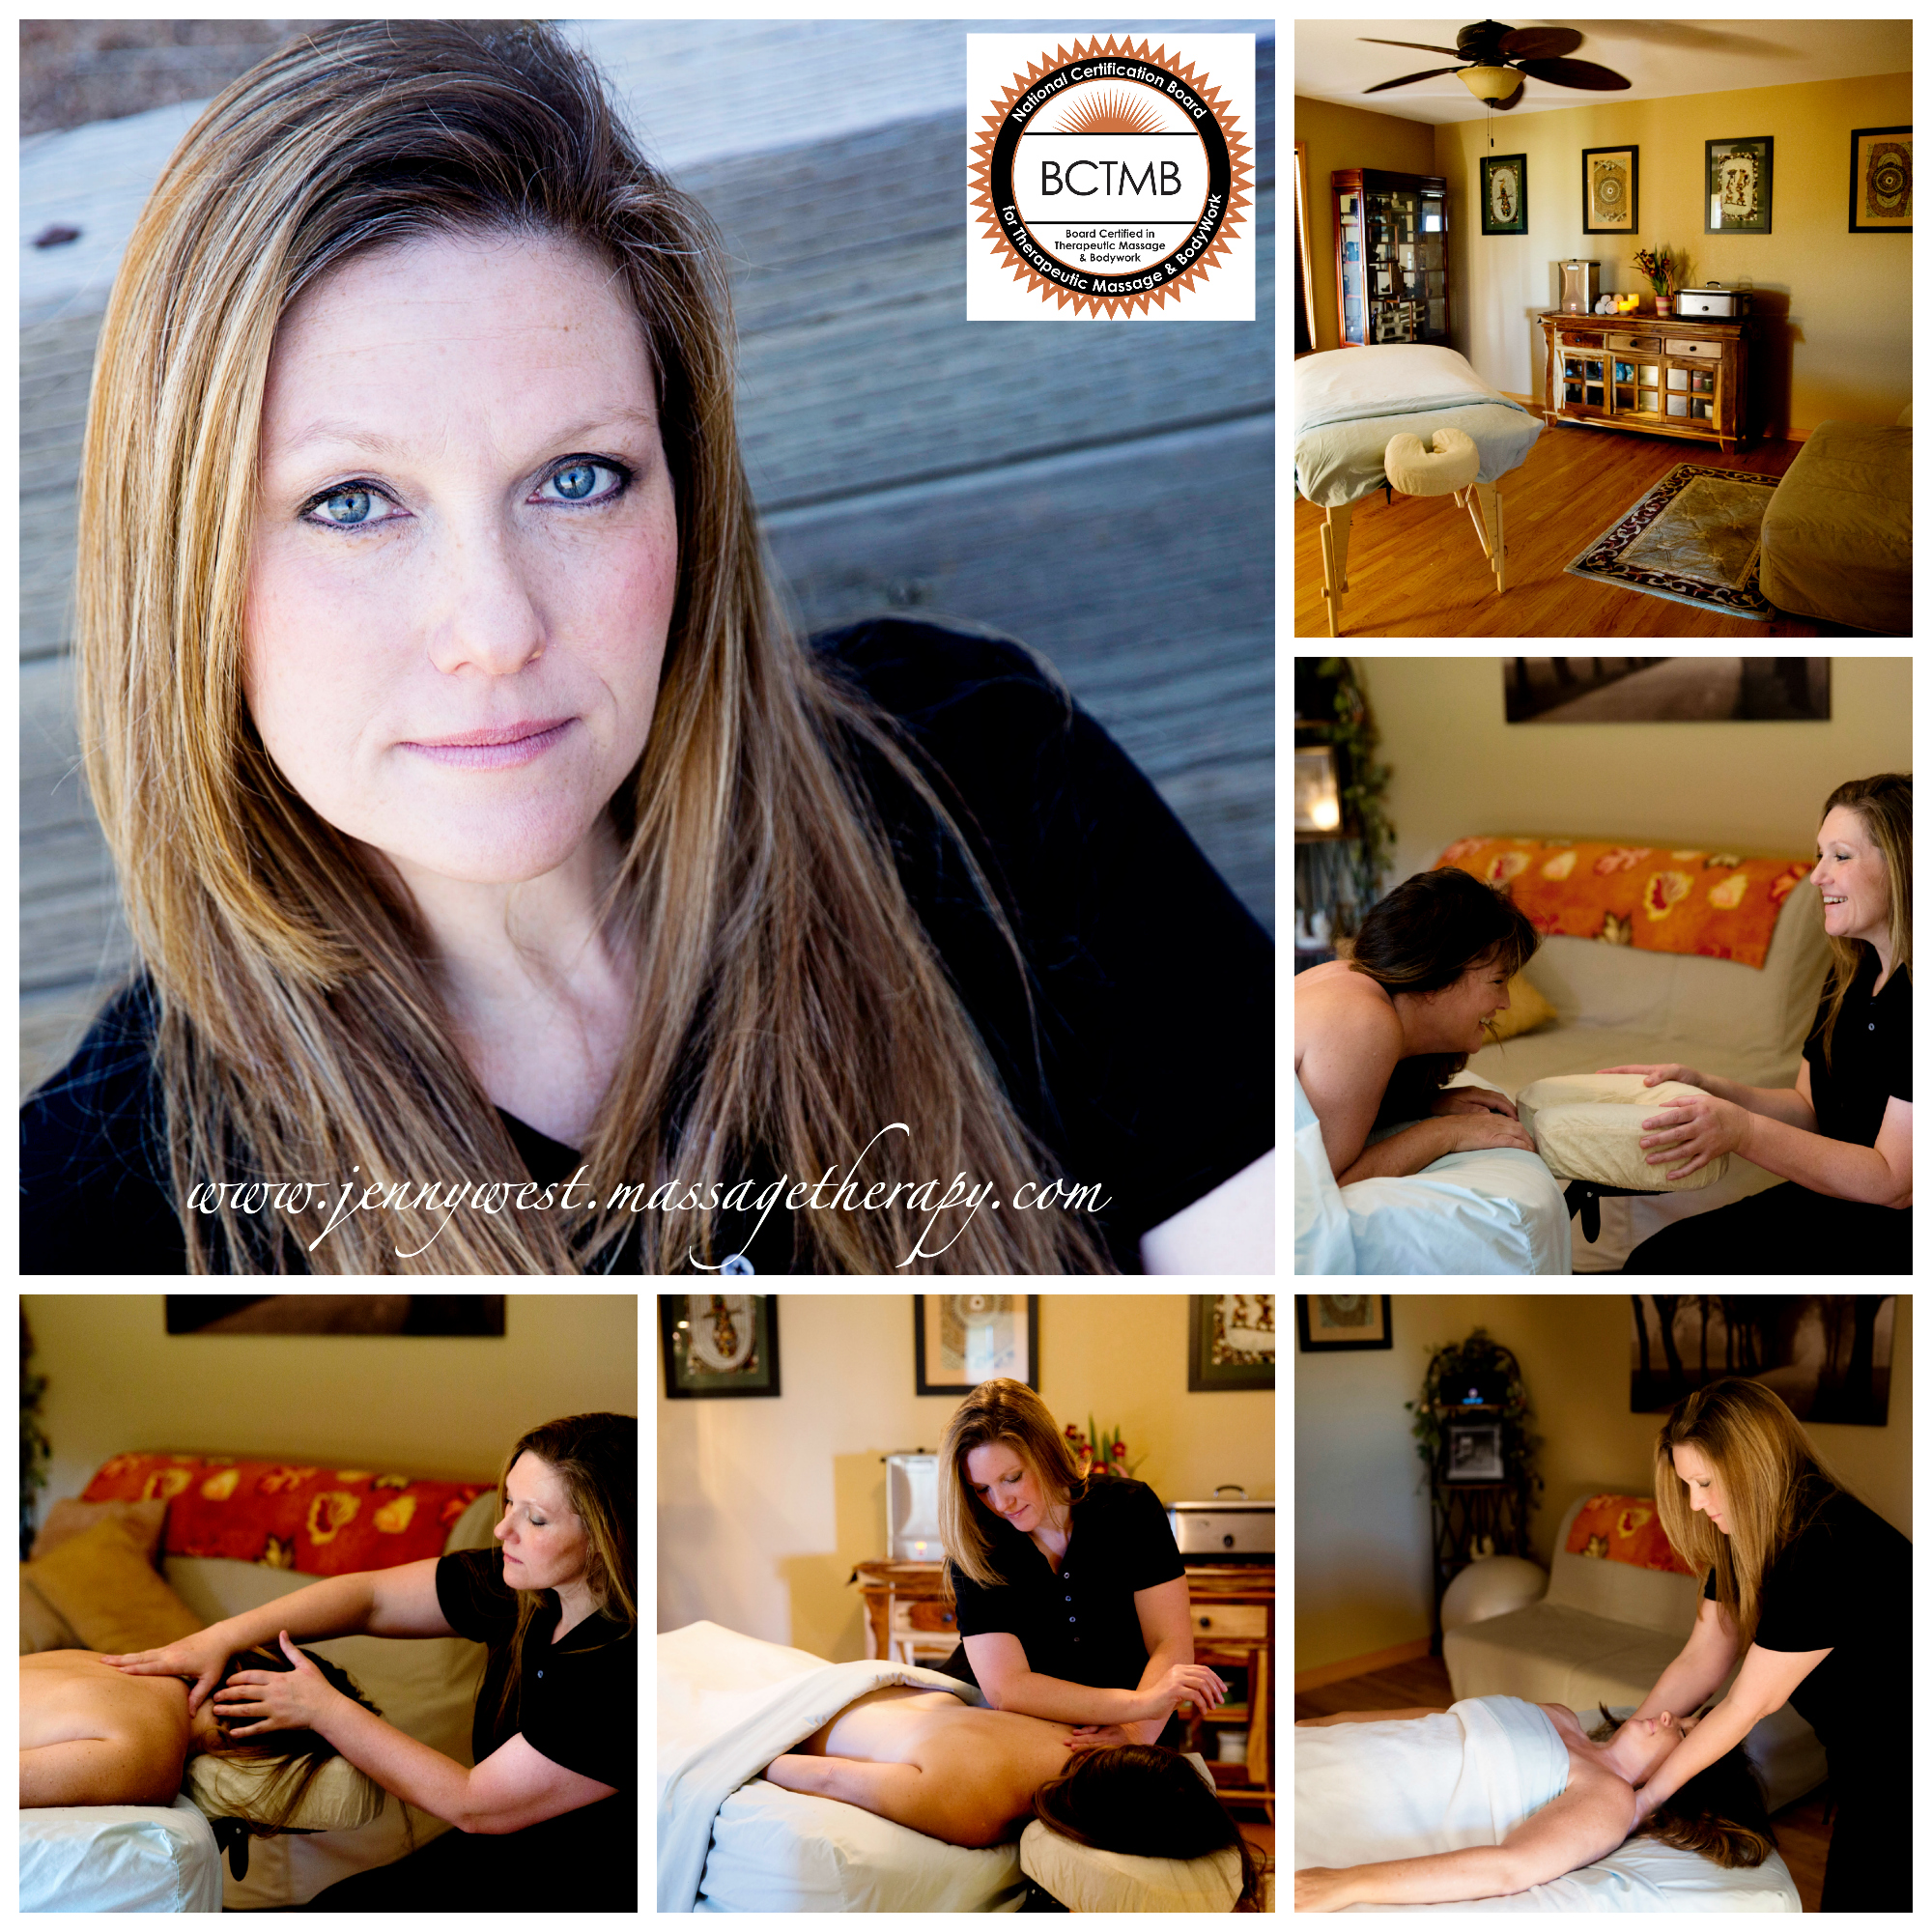 how to get certified as a massage therapist